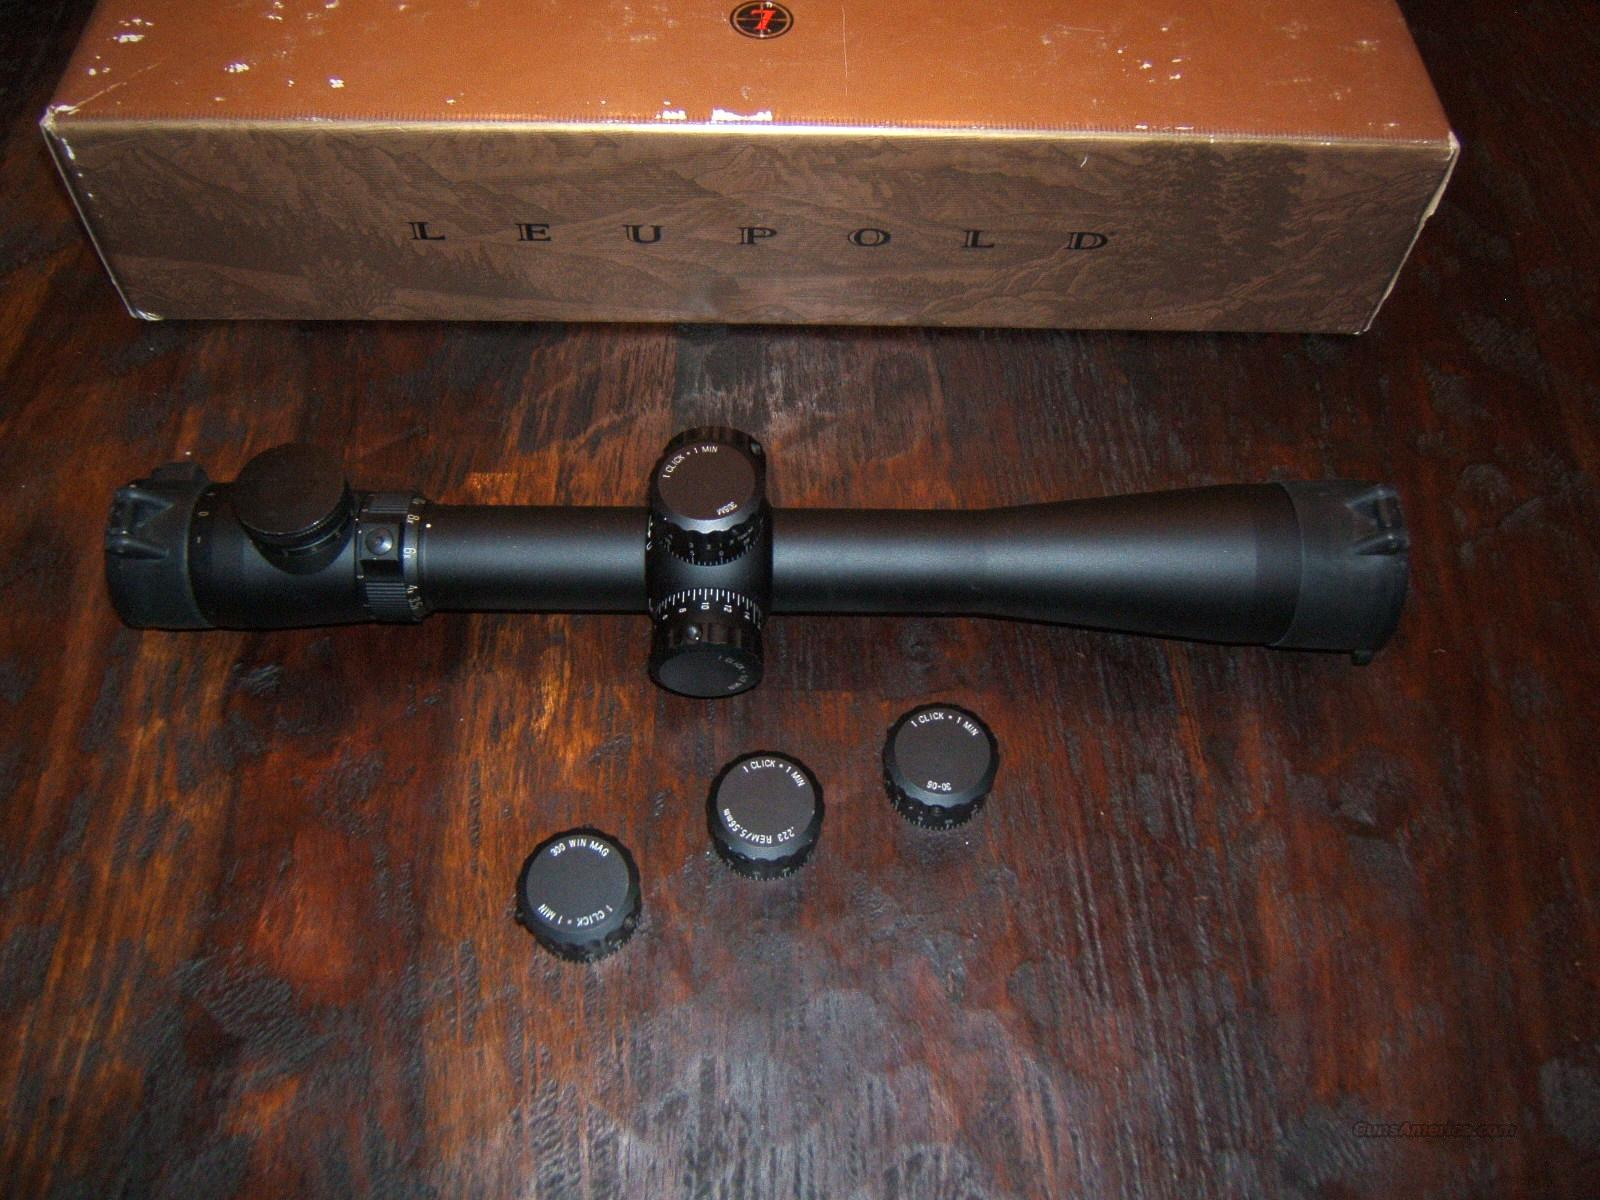 Vari-x III Tactical M3 3.5-10x40mm IL Mil Dot   Non-Guns > Scopes/Mounts/Rings & Optics > Tactical Scopes > Variable Recticle